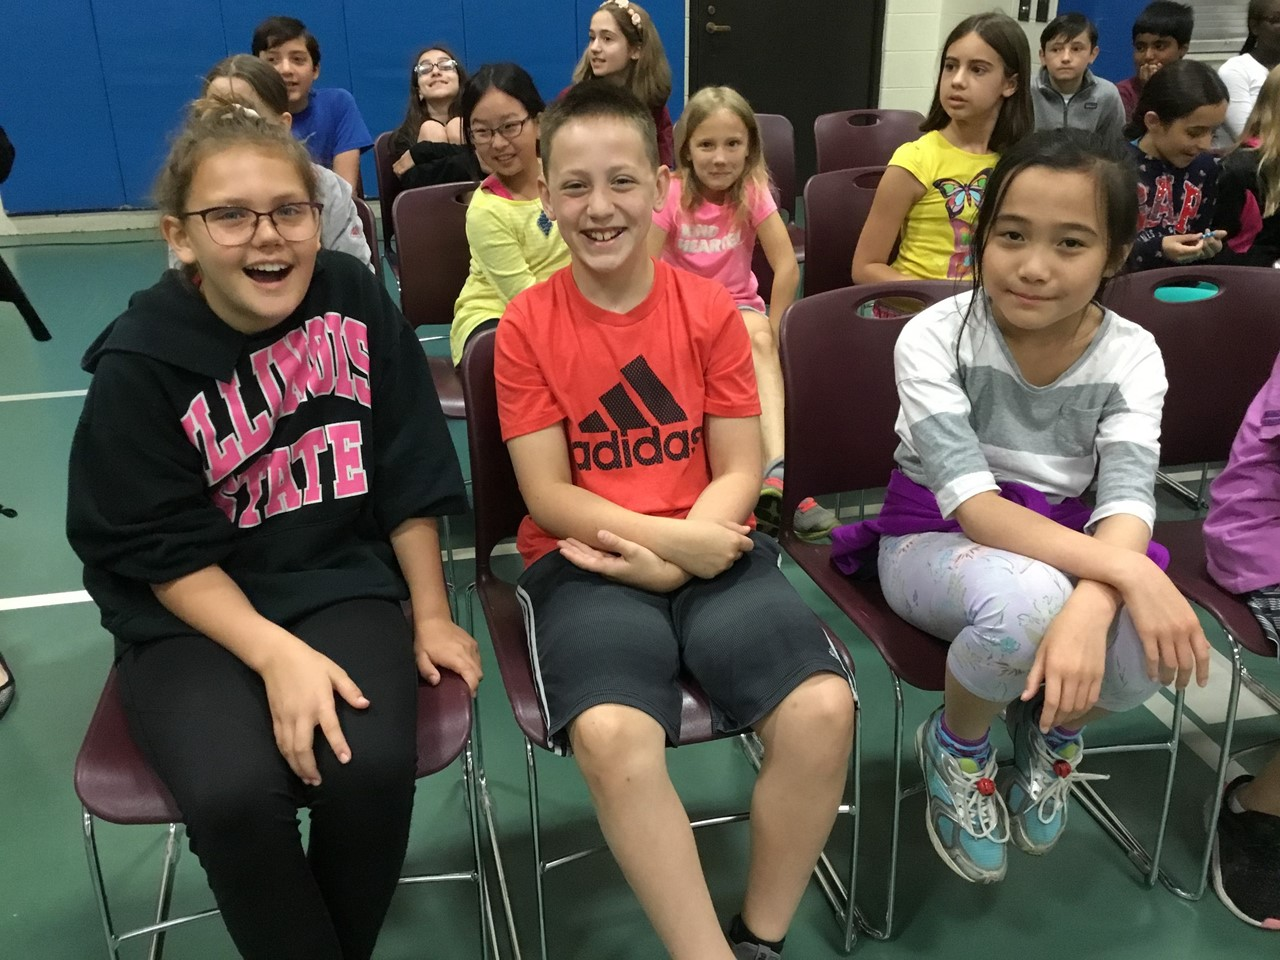 Students in the end of the year spelling bee. They are sitting in chairs ready to start the spelling bee.